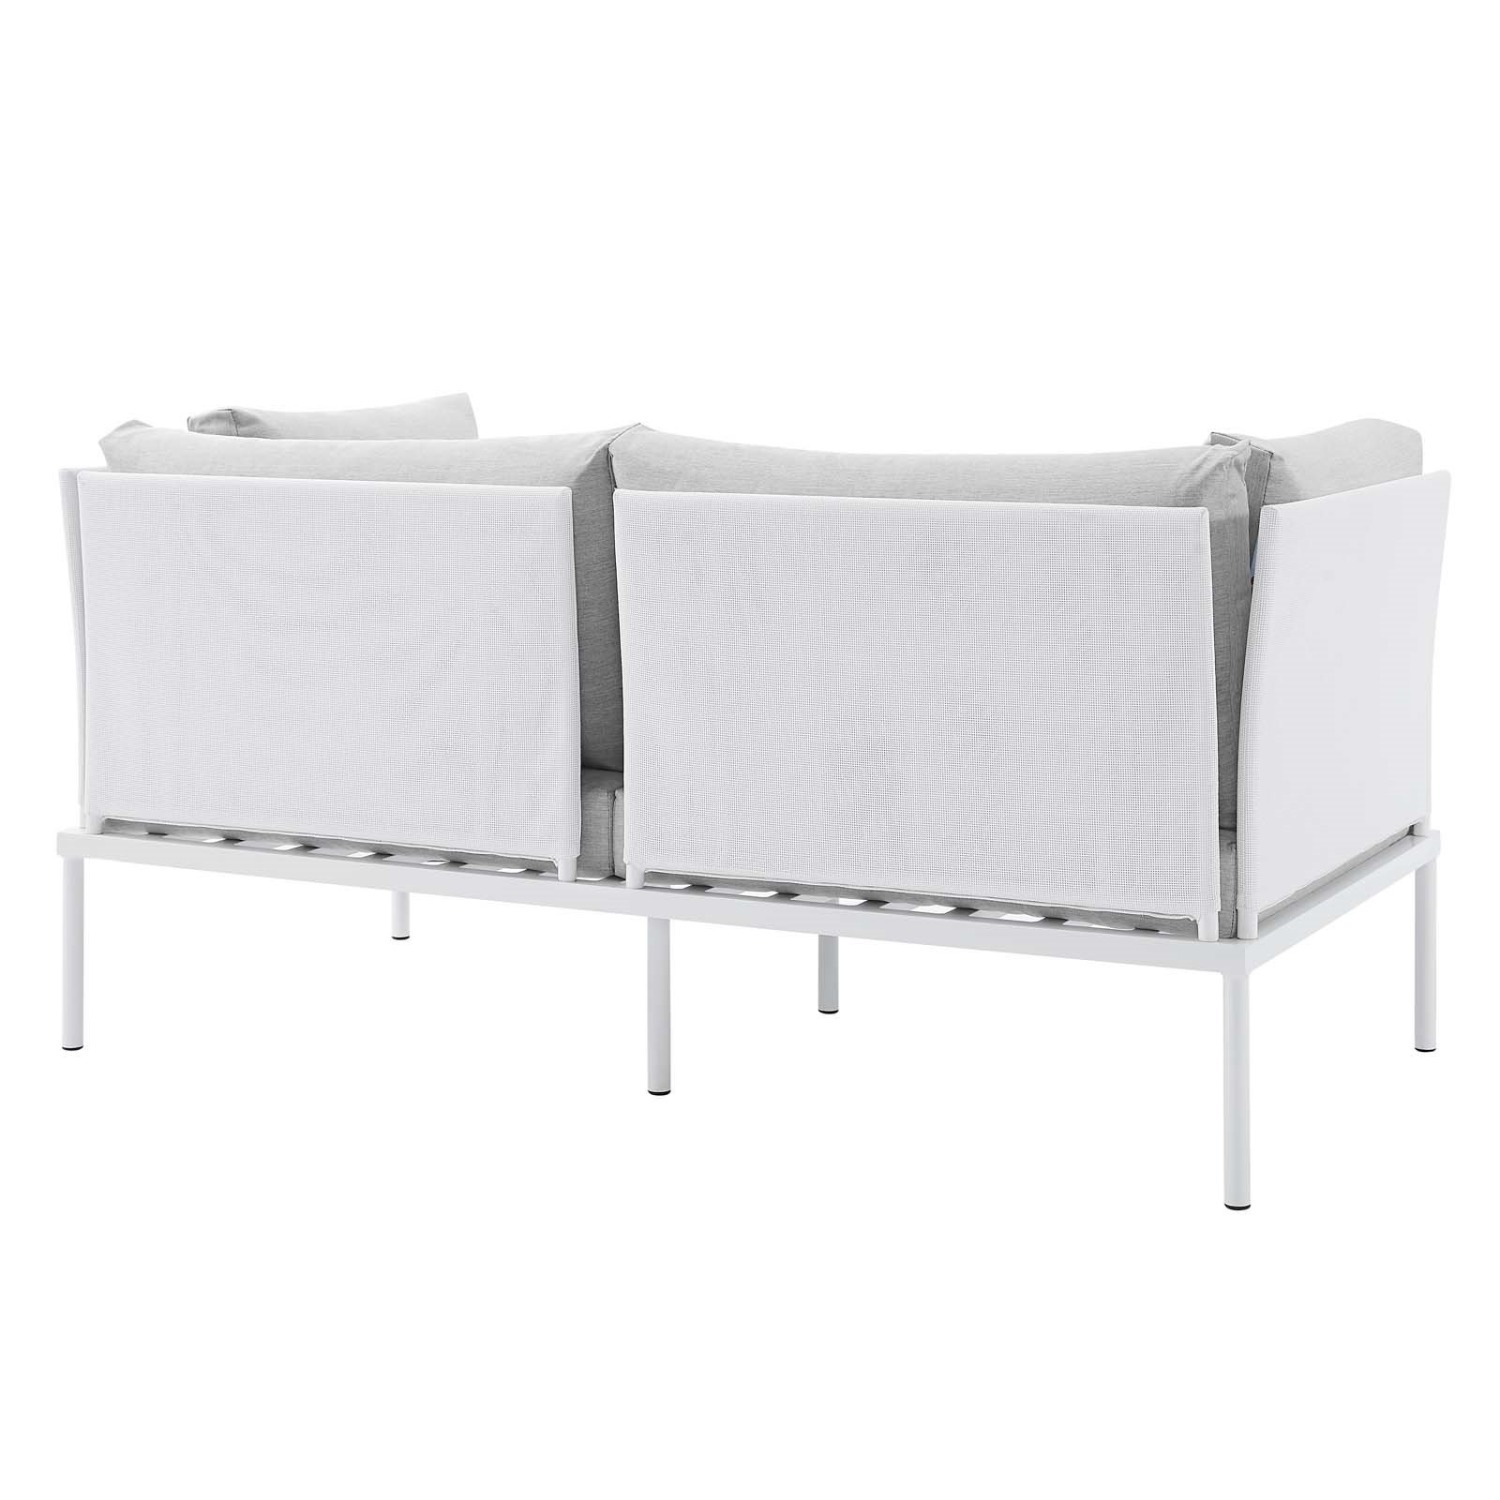 Outdoor Loveseat In White Frame & Gray Cushion - image-2